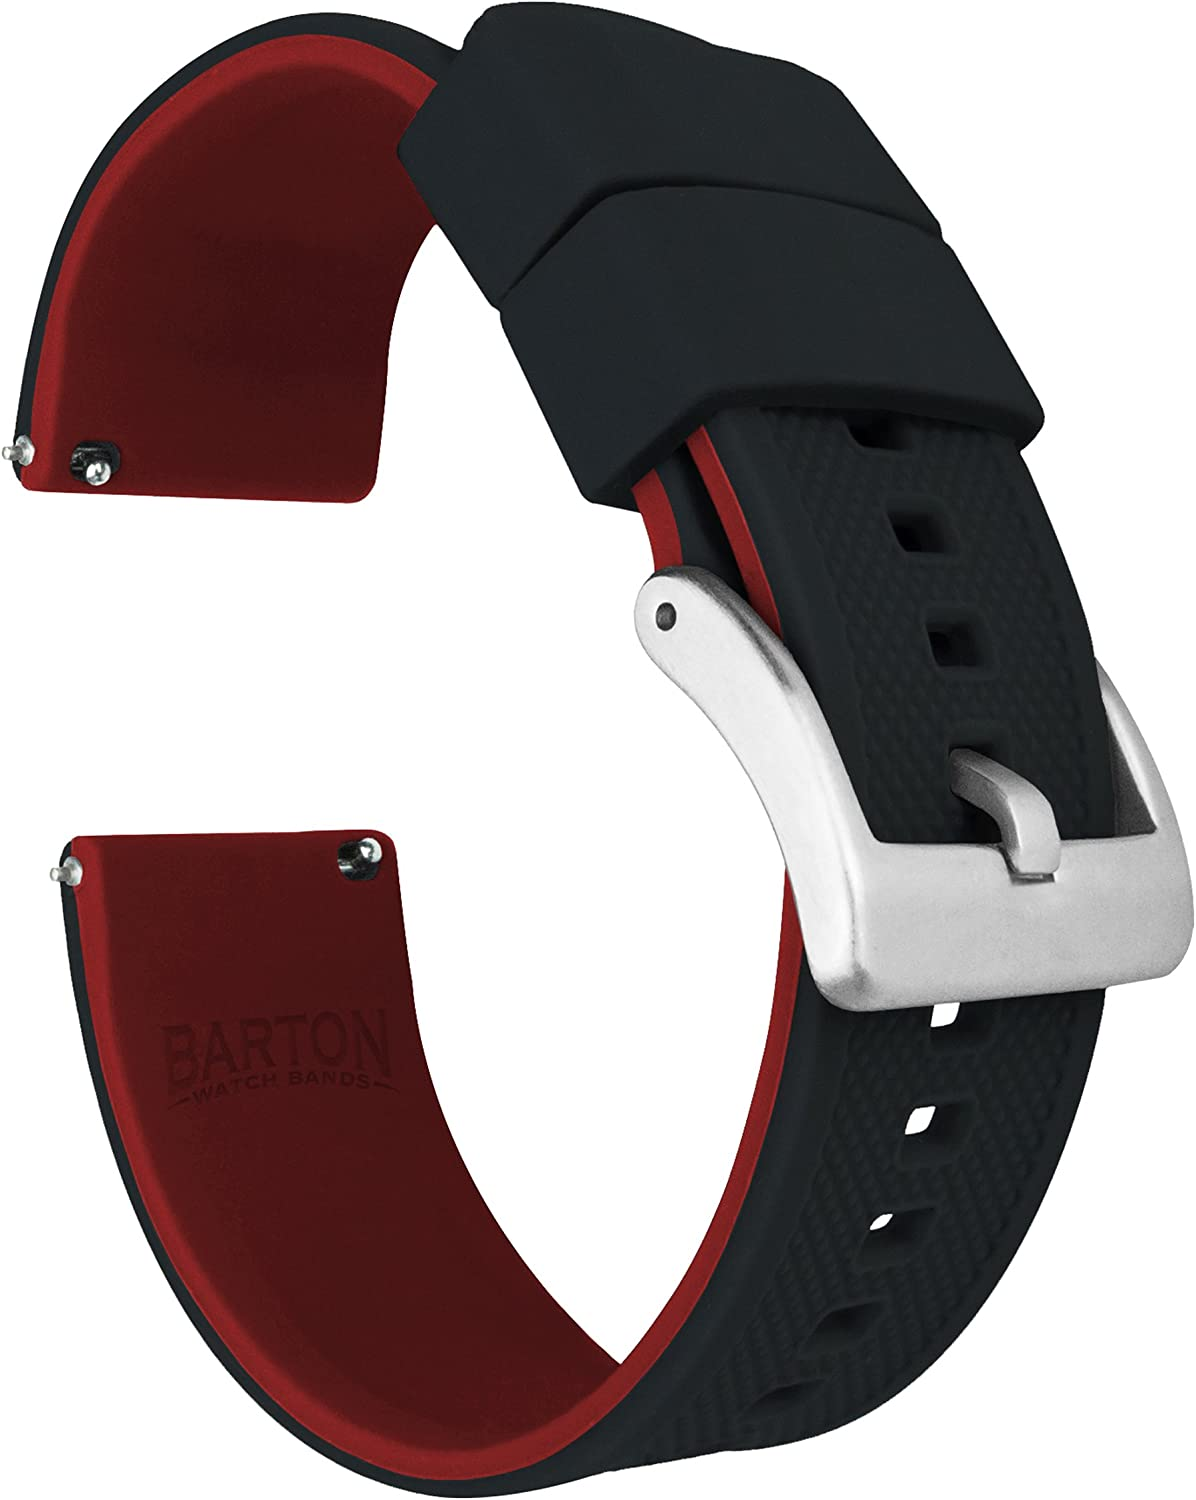 BARTON Watch Bands - Elite Silicone Watch Straps - Quick Release - Choose Color & Width - 18mm, 19mm, 20mm, 21mm, 22mm, 23mm & 24mm - Textured Rubber Watch Straps